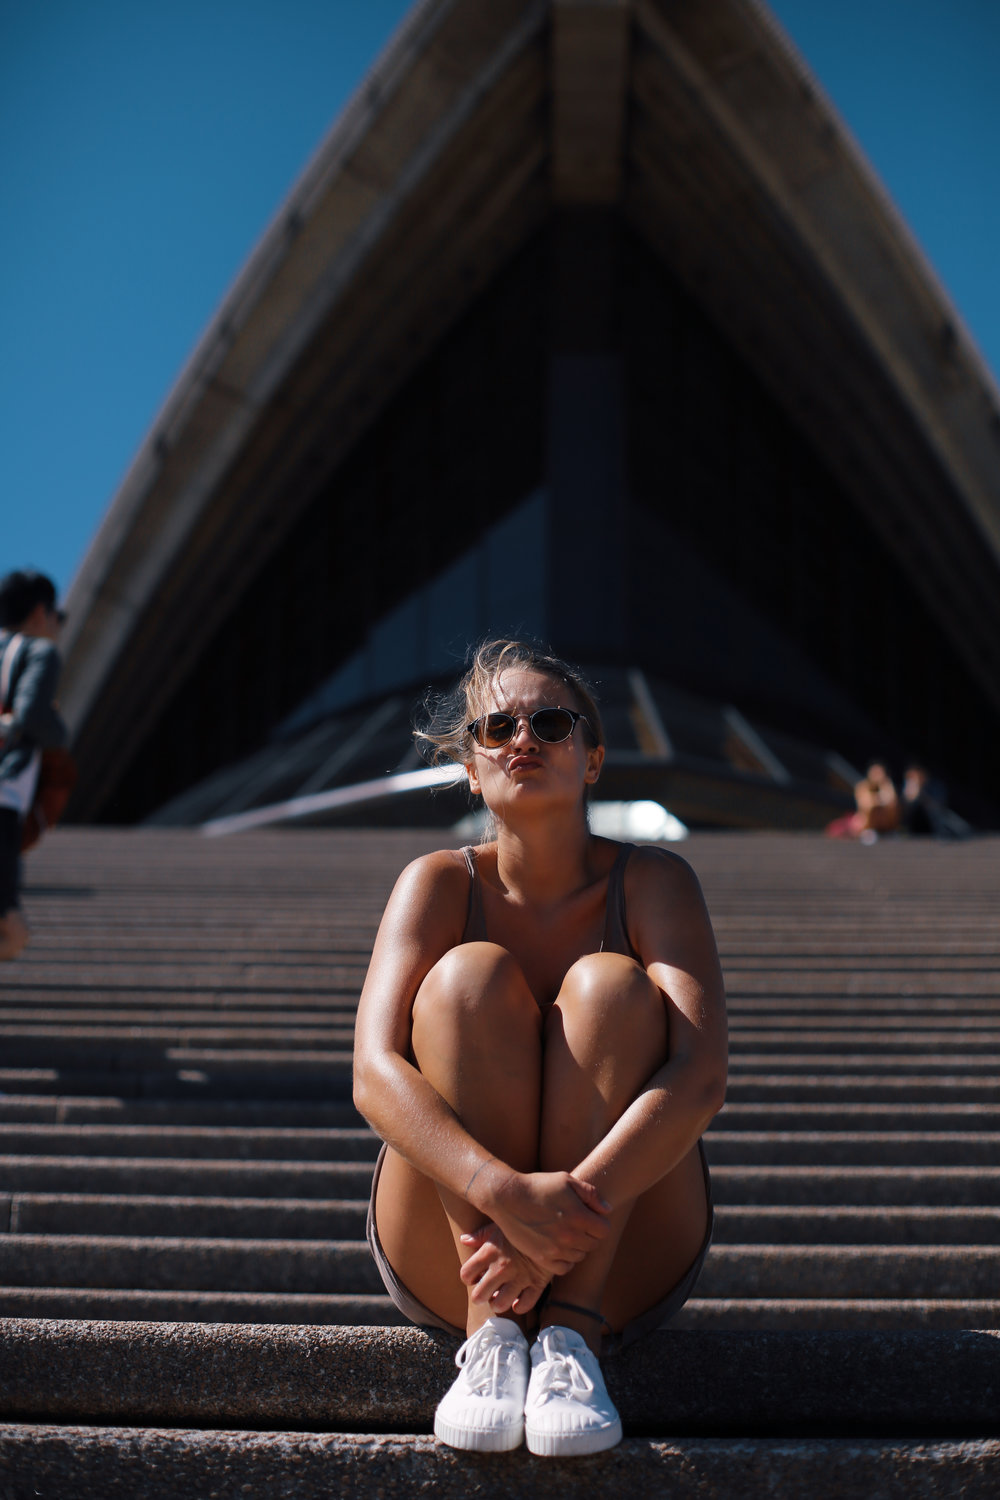 opera house and a girl in summer